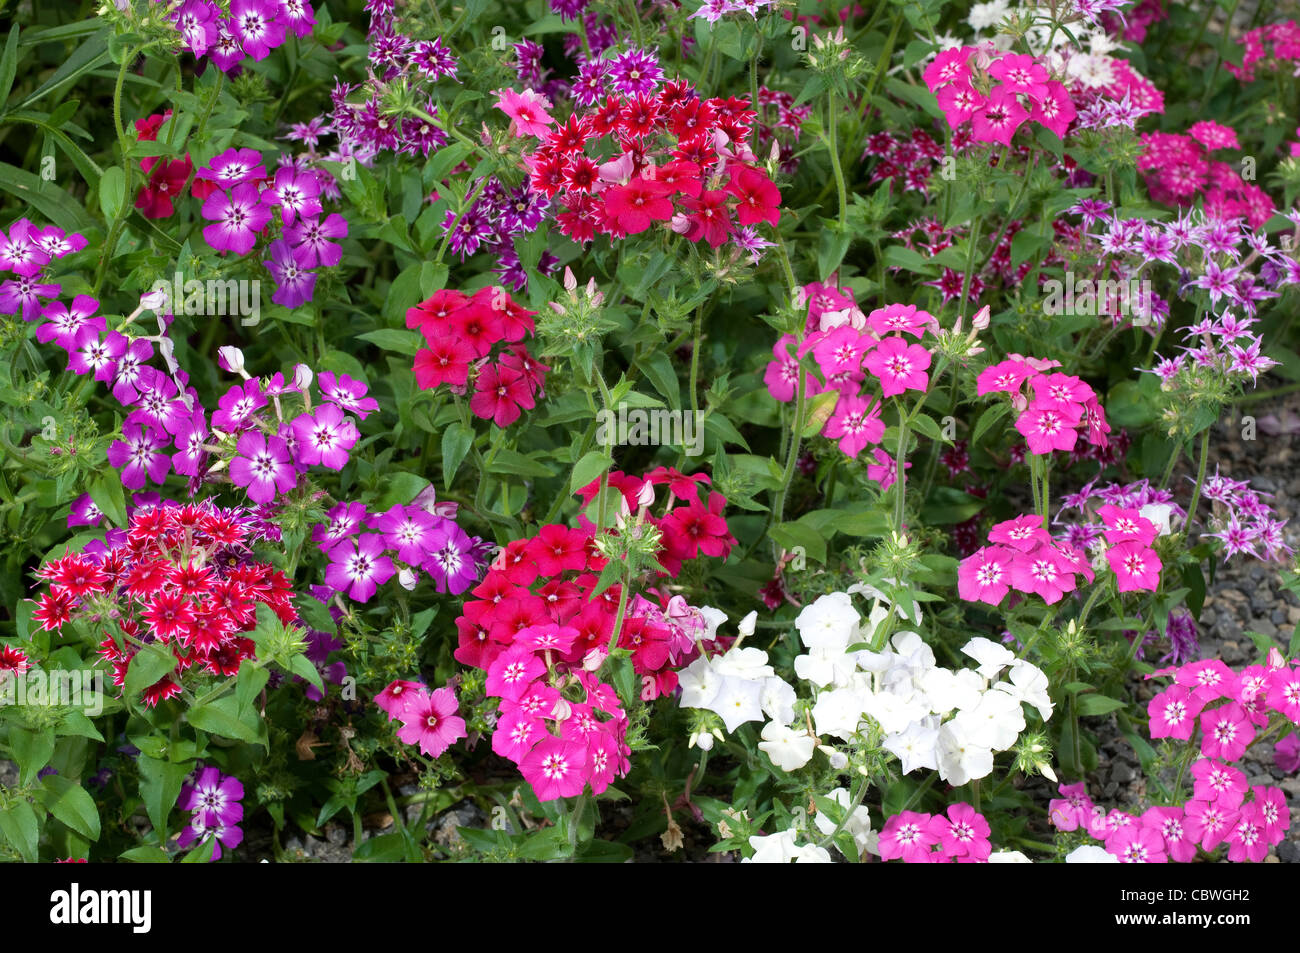 annual phlox phlox drummondii flowering stock photo royalty free image 41743774 alamy. Black Bedroom Furniture Sets. Home Design Ideas